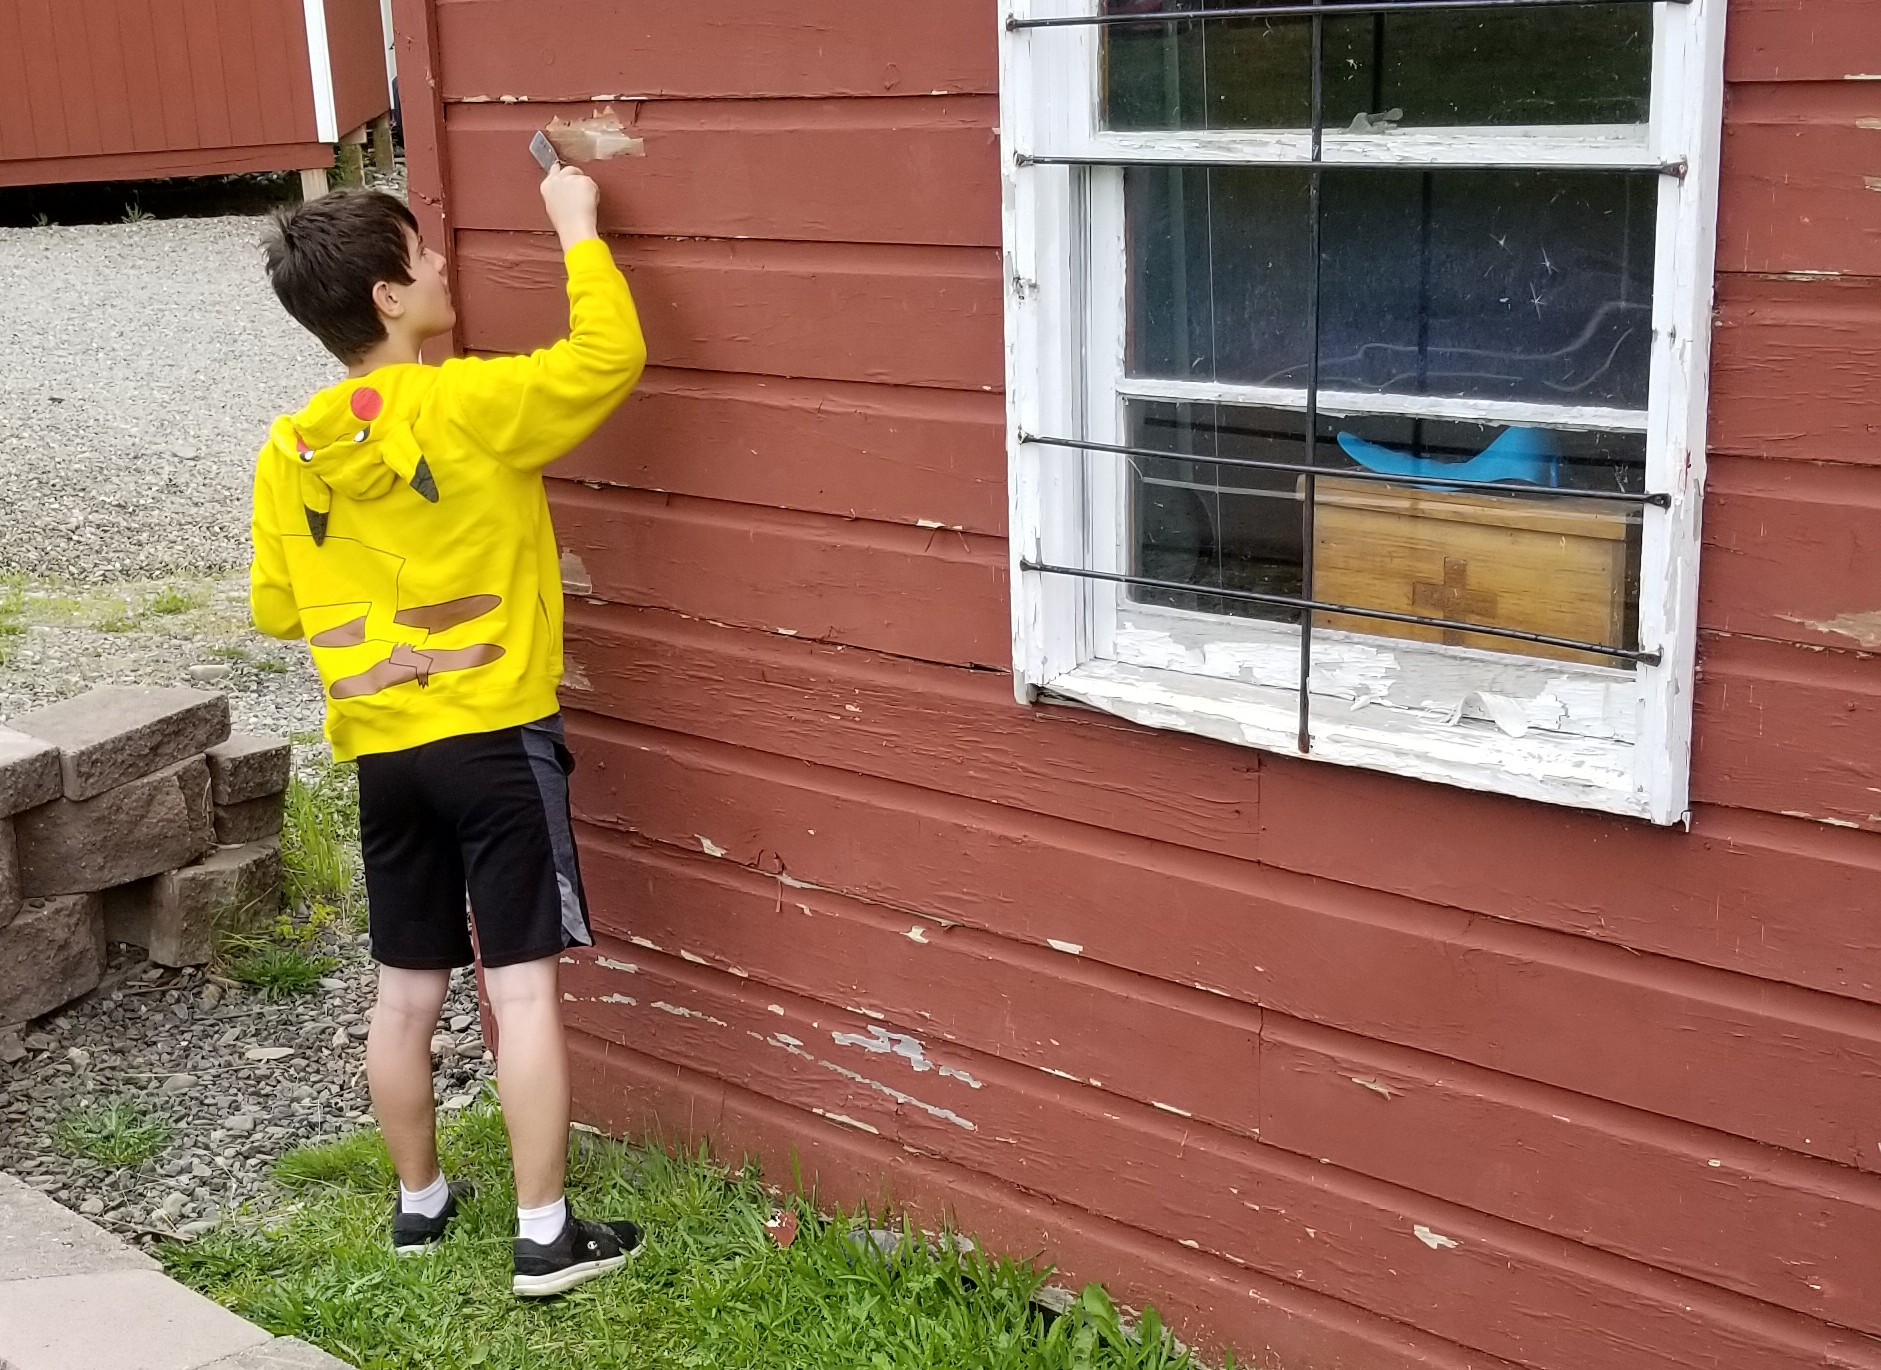 Caleb did a GREAT job as a Staff Boy. He scraped paint, re-painted buildings, mowed lawns, collected trash, moved bails of hay, helped move a fallen tree, and whatever else needed done around the camp. Way to go Caleb!